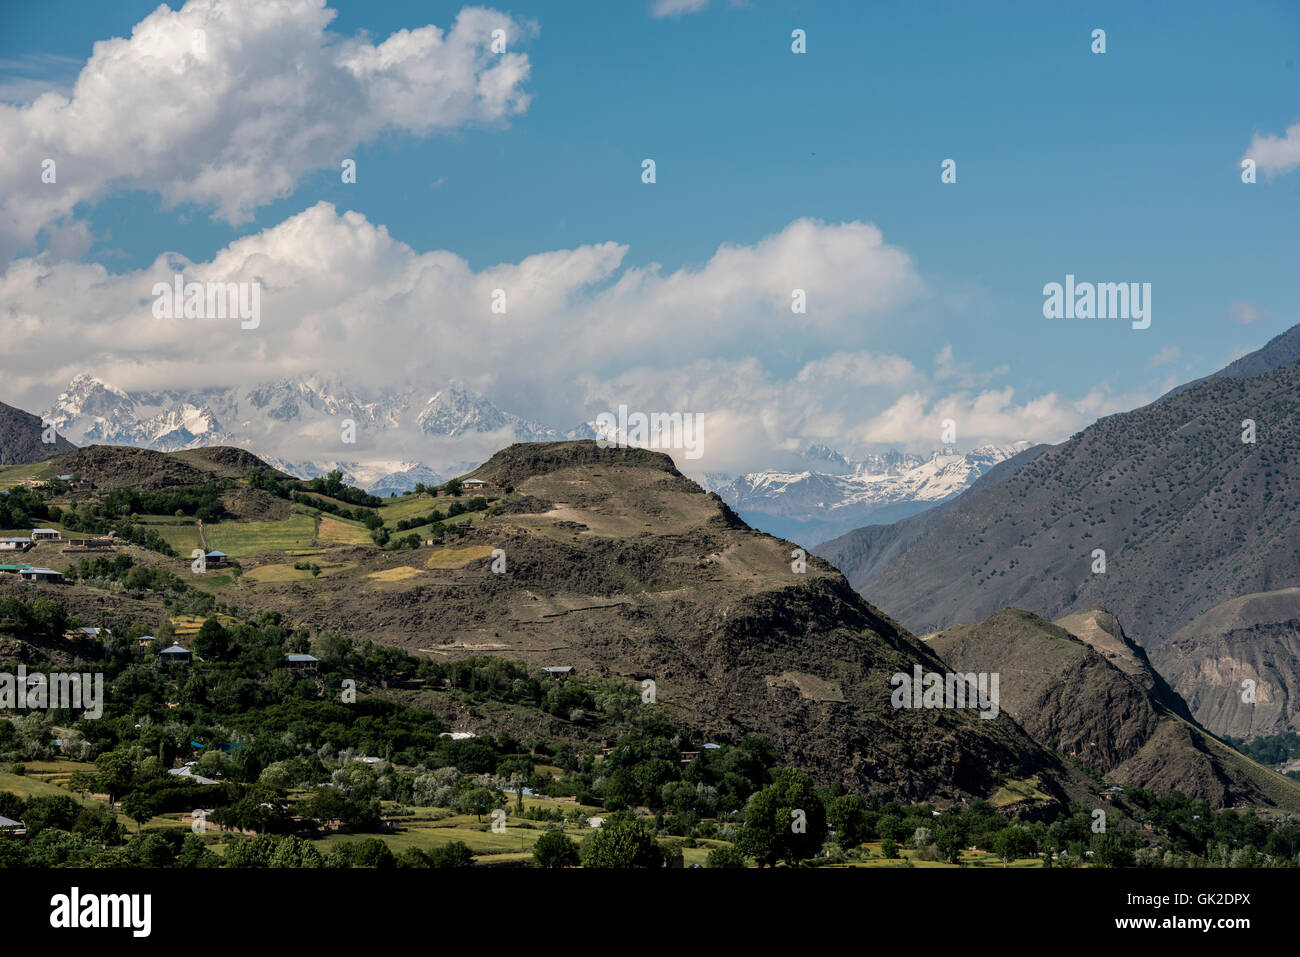 Hill top overlooking the village of Ayun in northern Pakistan, with the mountains of the Hindu Kush in the background - Stock Image